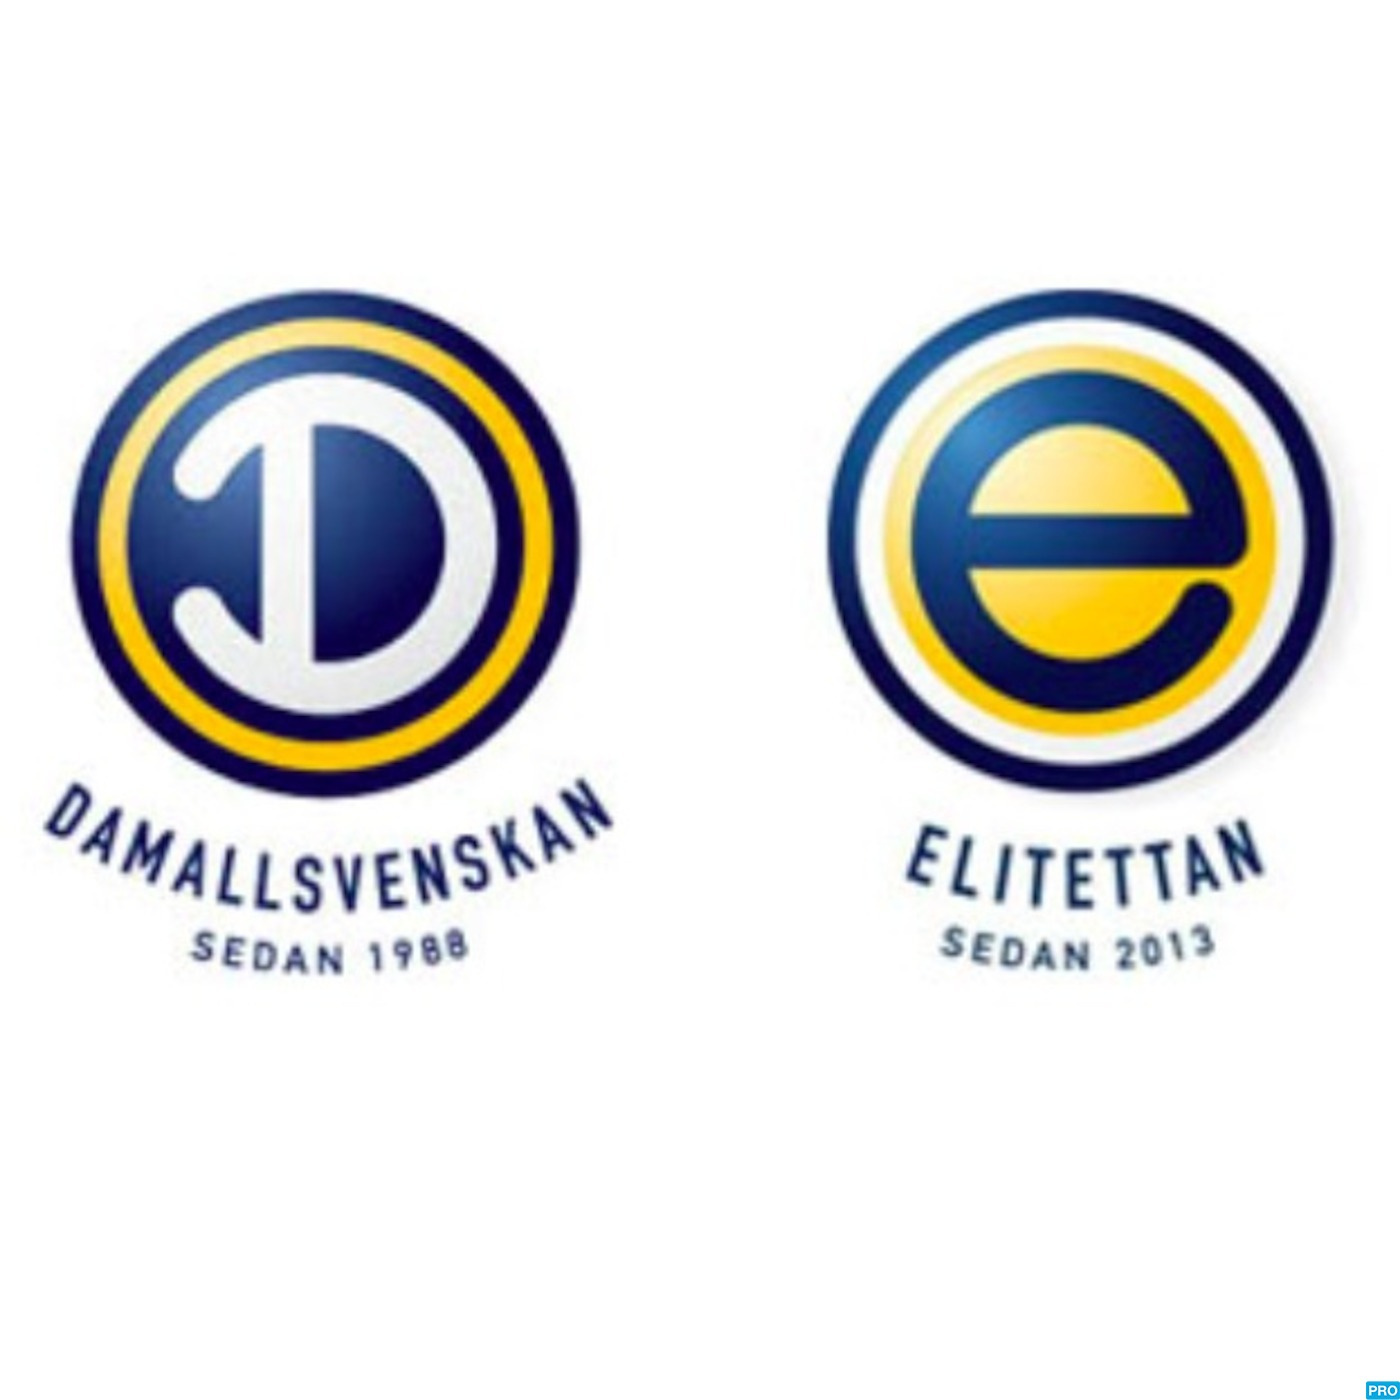 Damelitfotbollens officiella podcast